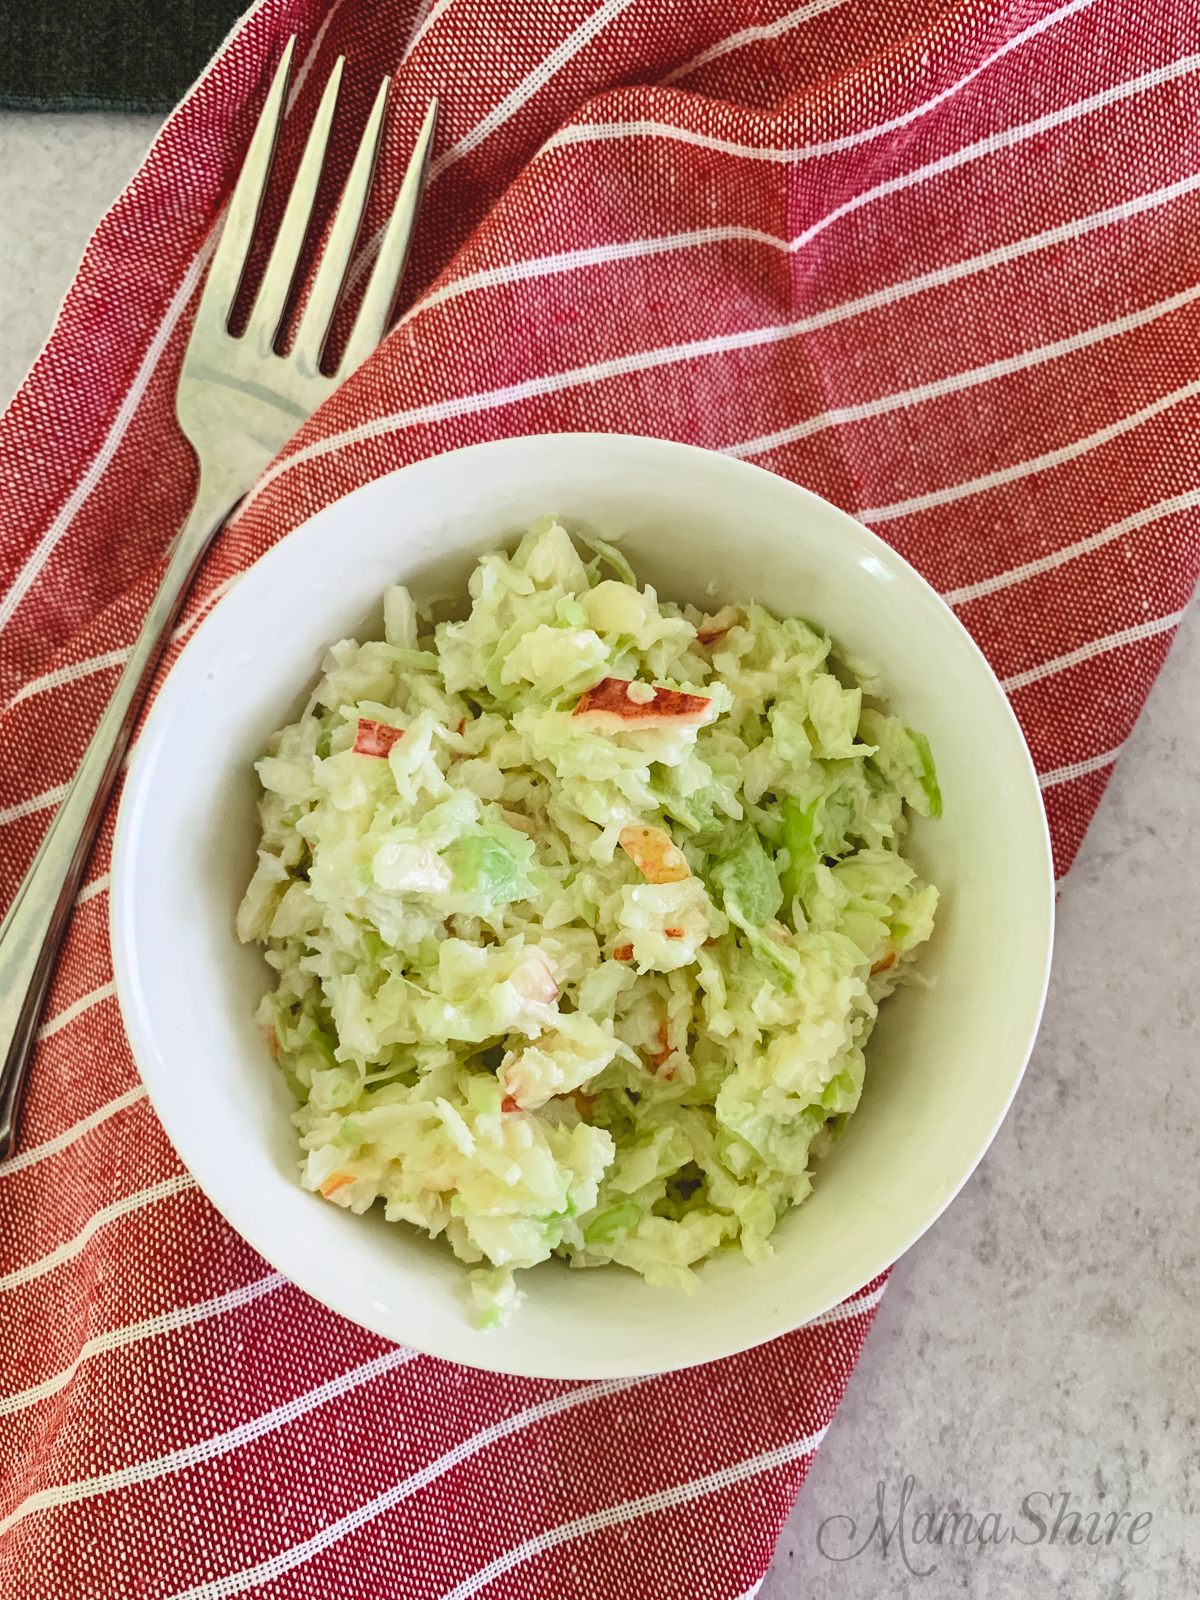 A single serving of sweet coleslaw with a linen red napkin.